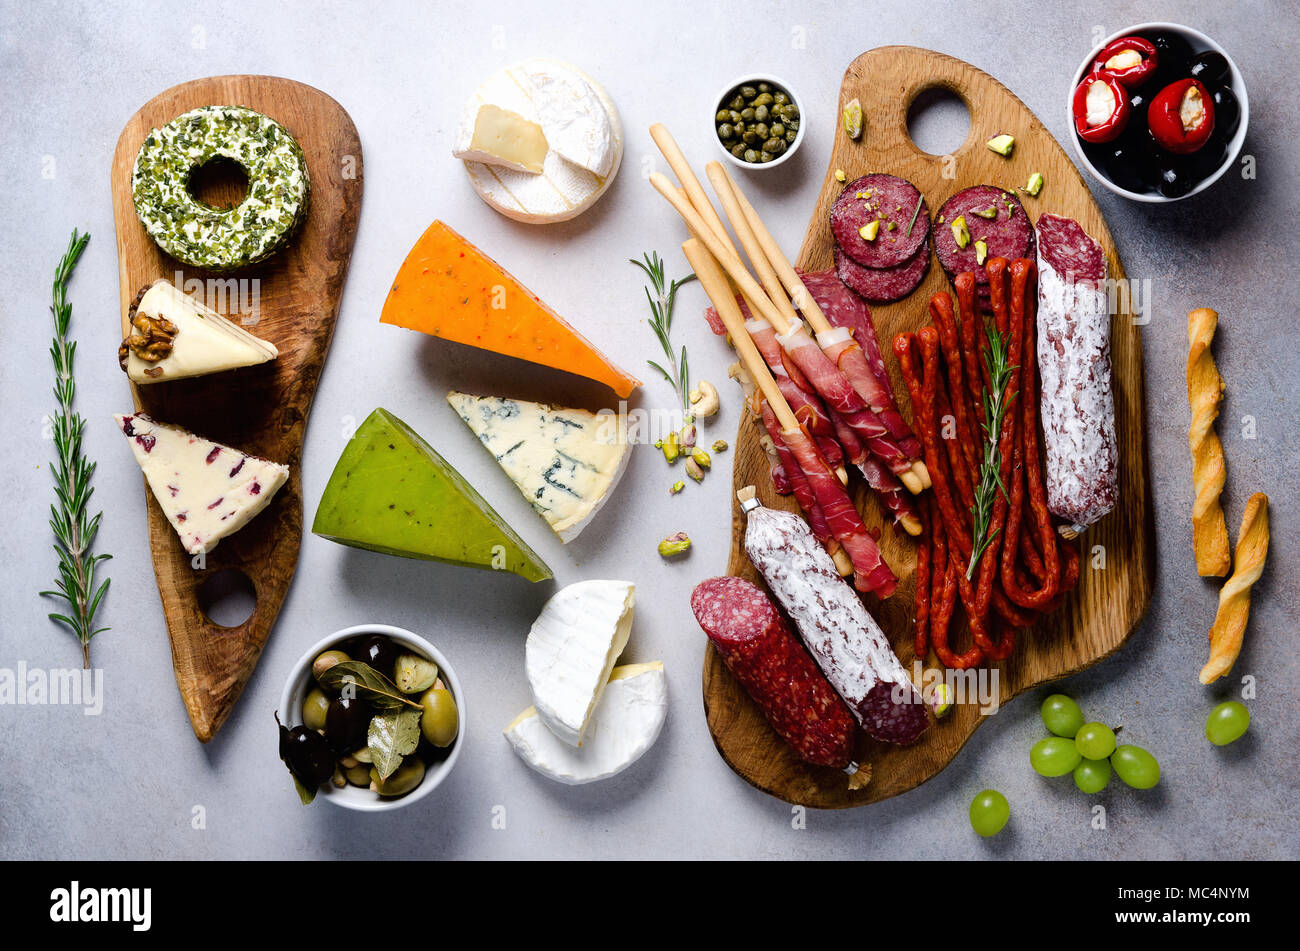 Cutting board with cold smoked meat, prosciutto, salami, assortment of cheeses, bread sticks, capers, olives on grey stone background. Cheese and meat appetizer. Top view, copy space, flat lay Stock Photo